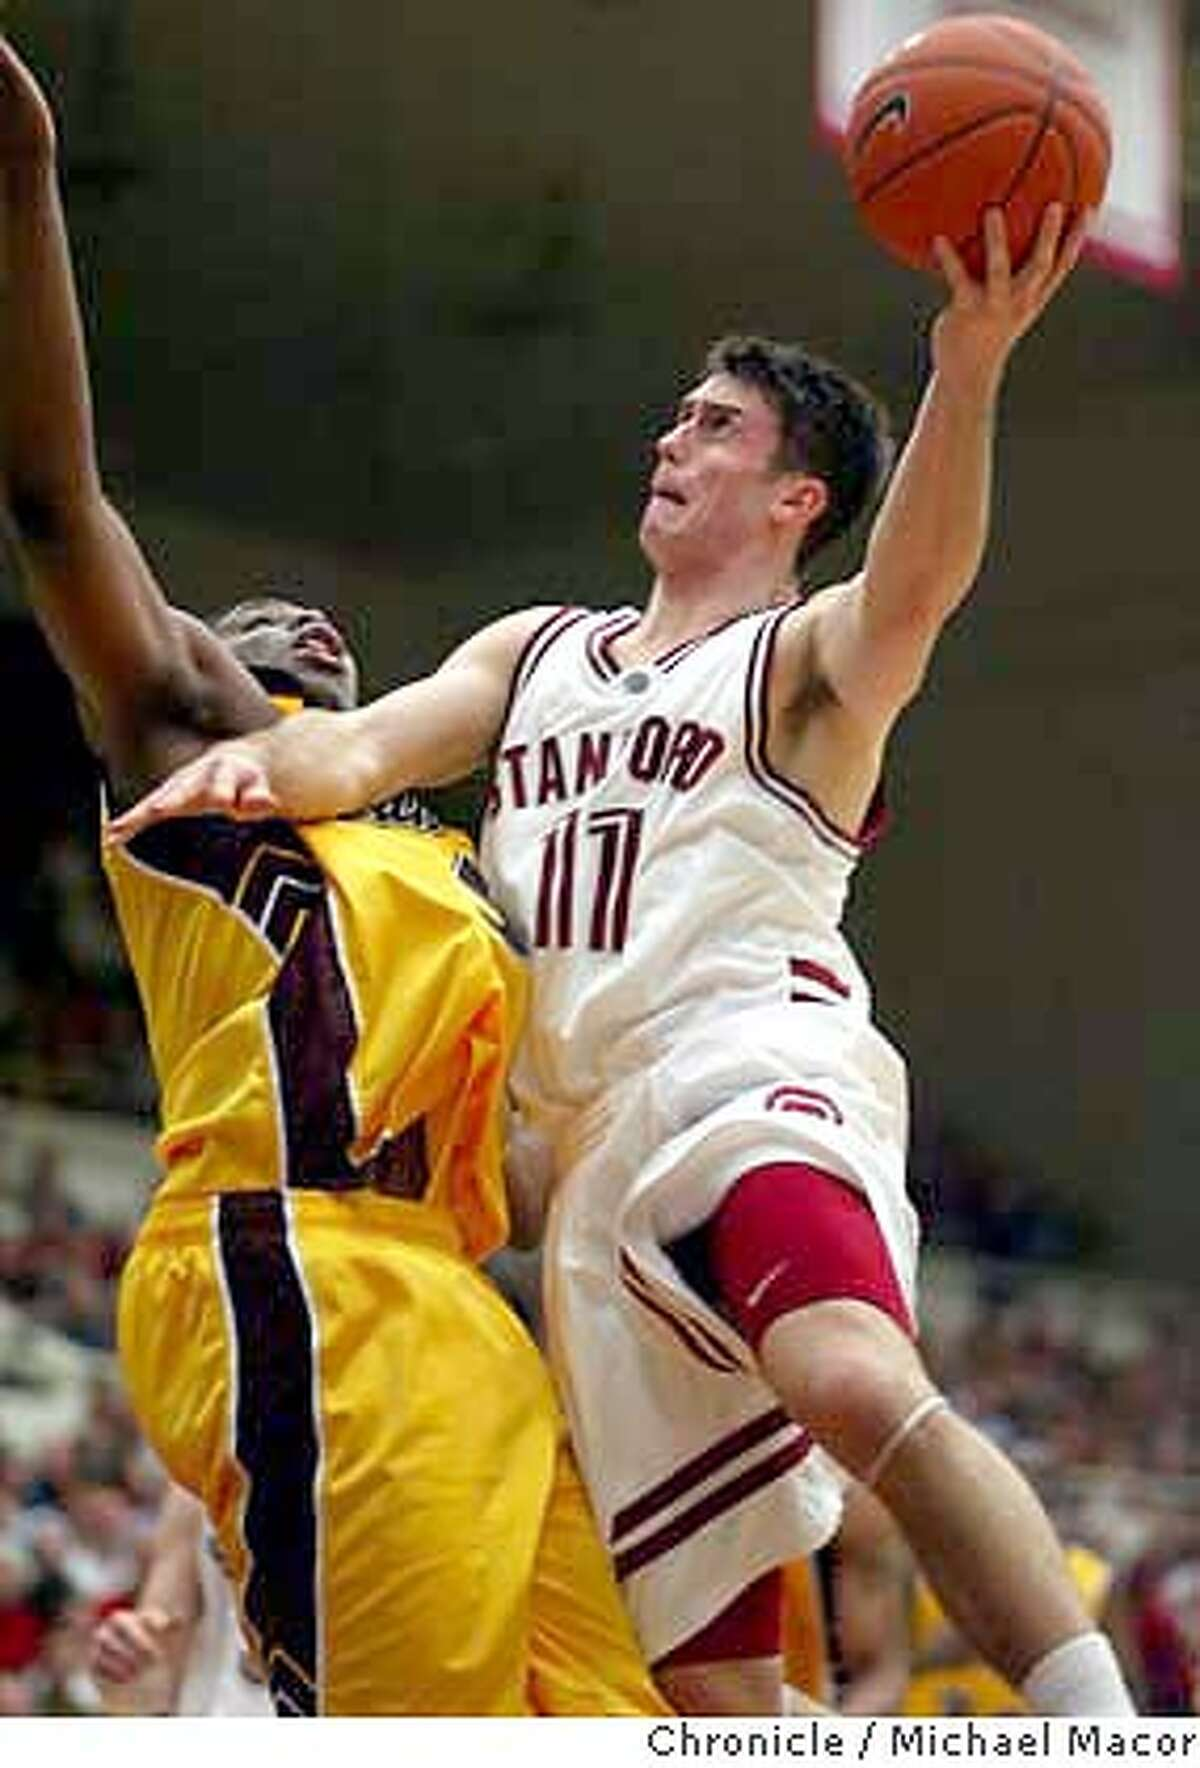 Stanford's 11- Chris Hernandez up and over Arizona's 5-Ike Diogu for two in the first half. Mens College Basketball Stanford Cardinal vs. Arizona Sun Devils. event on 2/5/04 in Palo Alto Michael Macor / The Chronicle